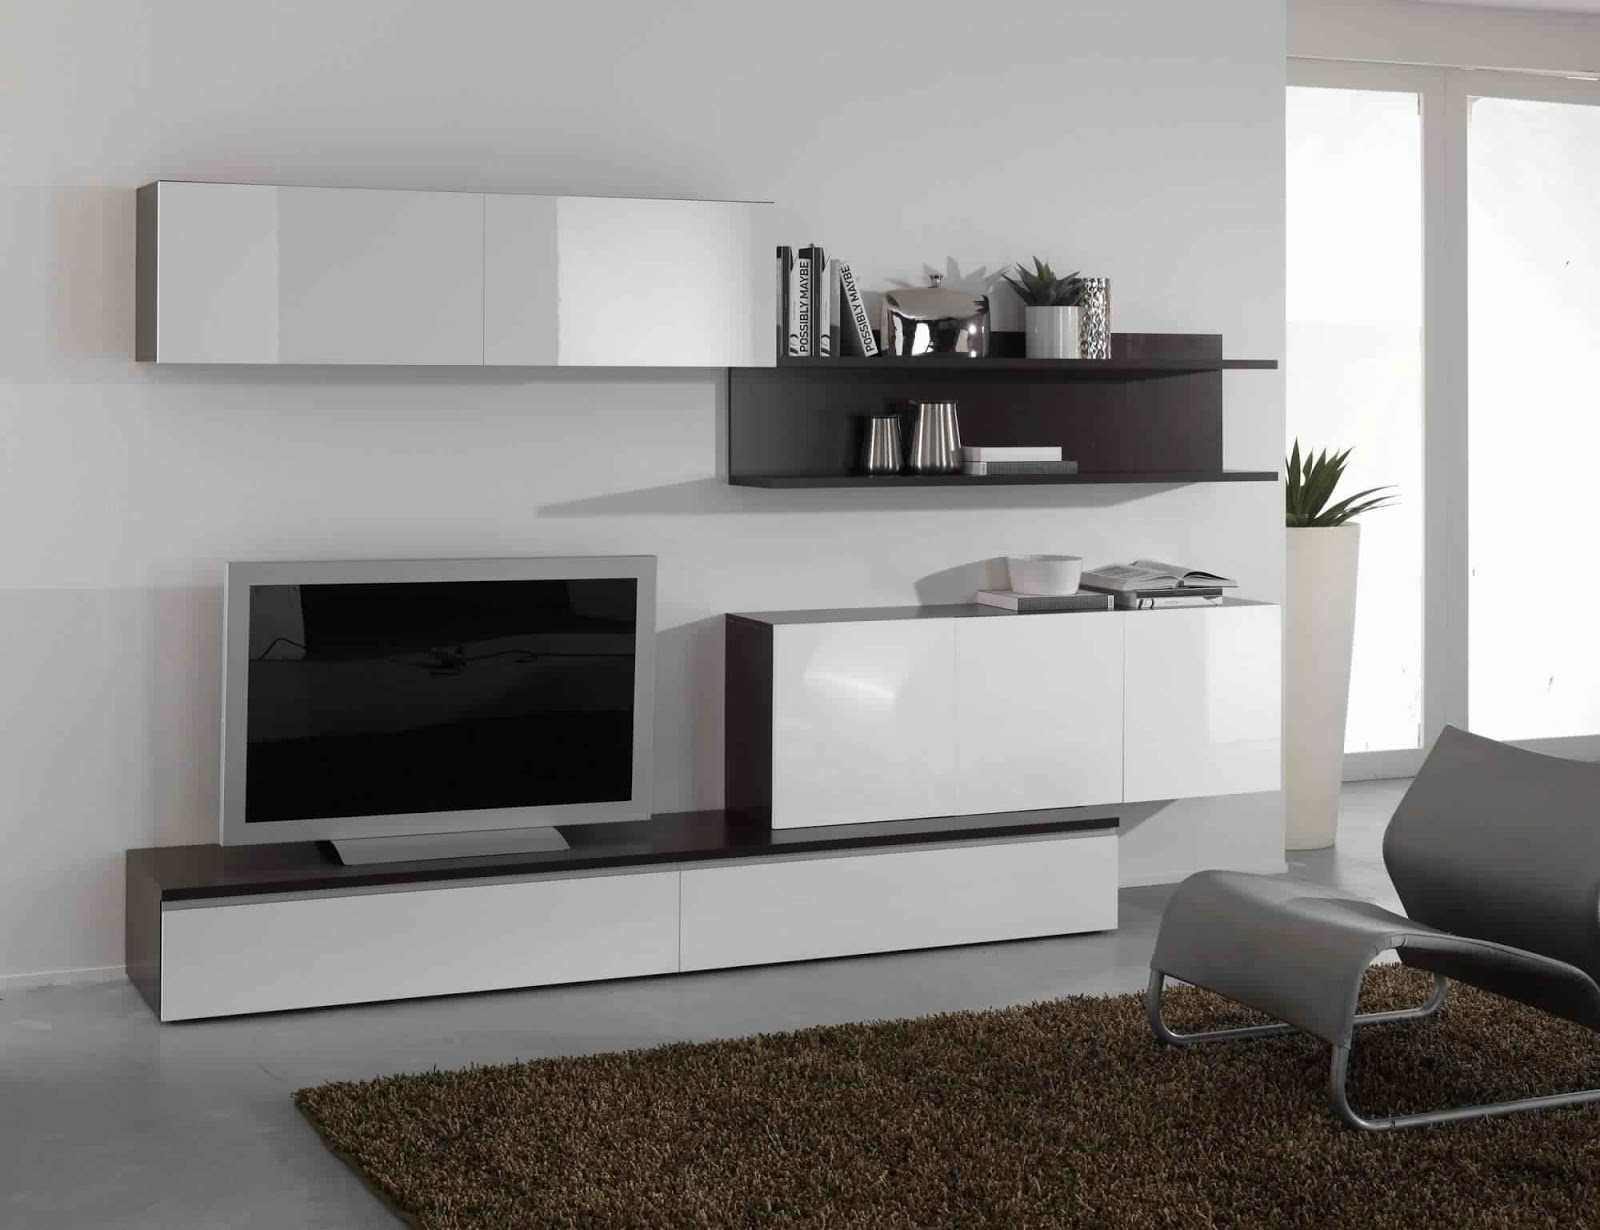 Composition Murale Meuble Tv Mur Tv Design Finest Mur Tv Design Laqu Blanc Dcor Chrom With Mur